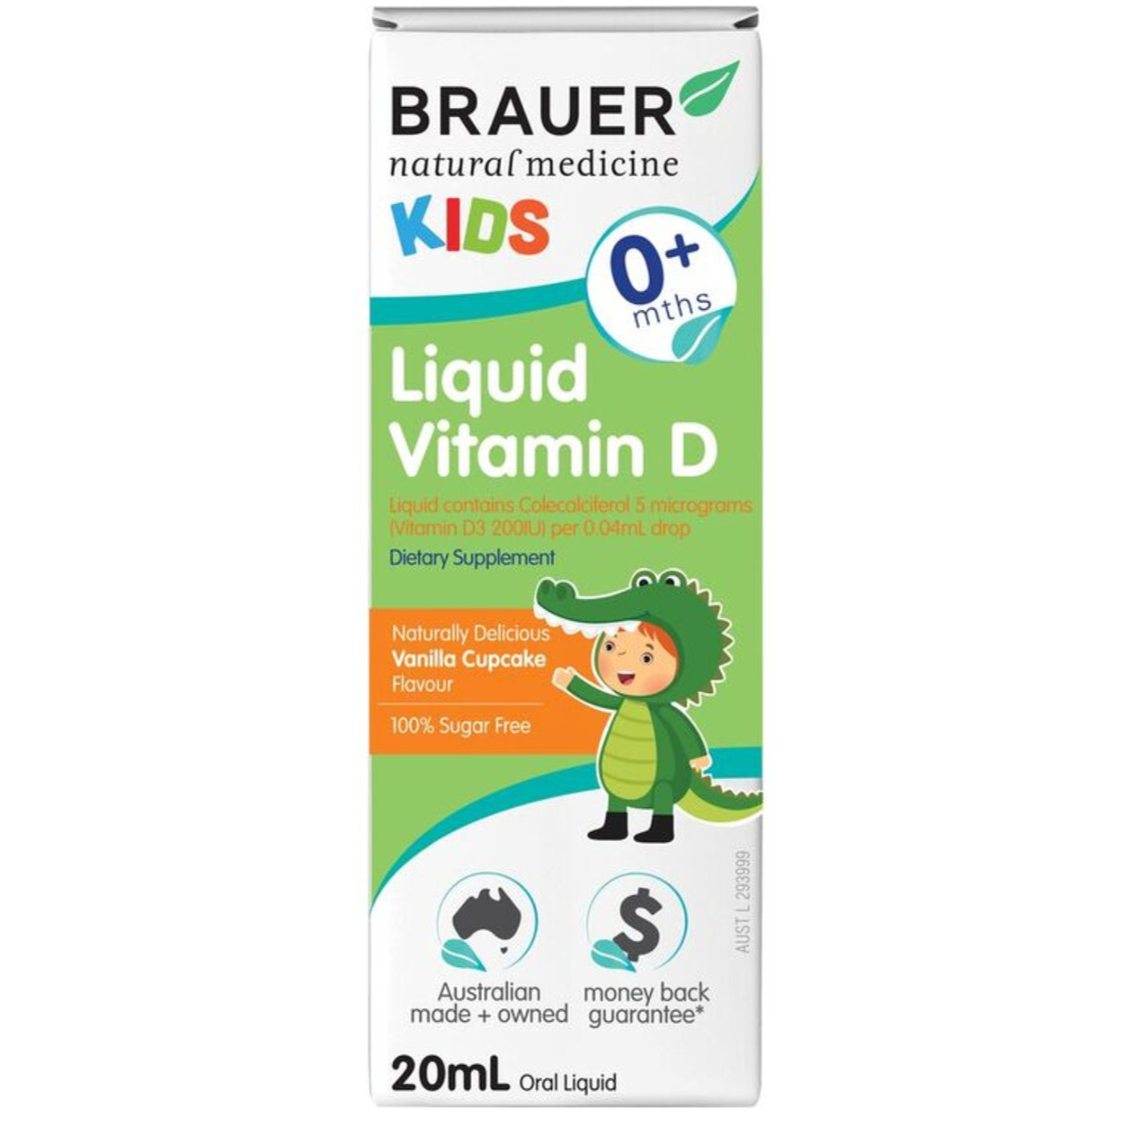 Brauer Kids Liquid Vitamin D, 20ml.